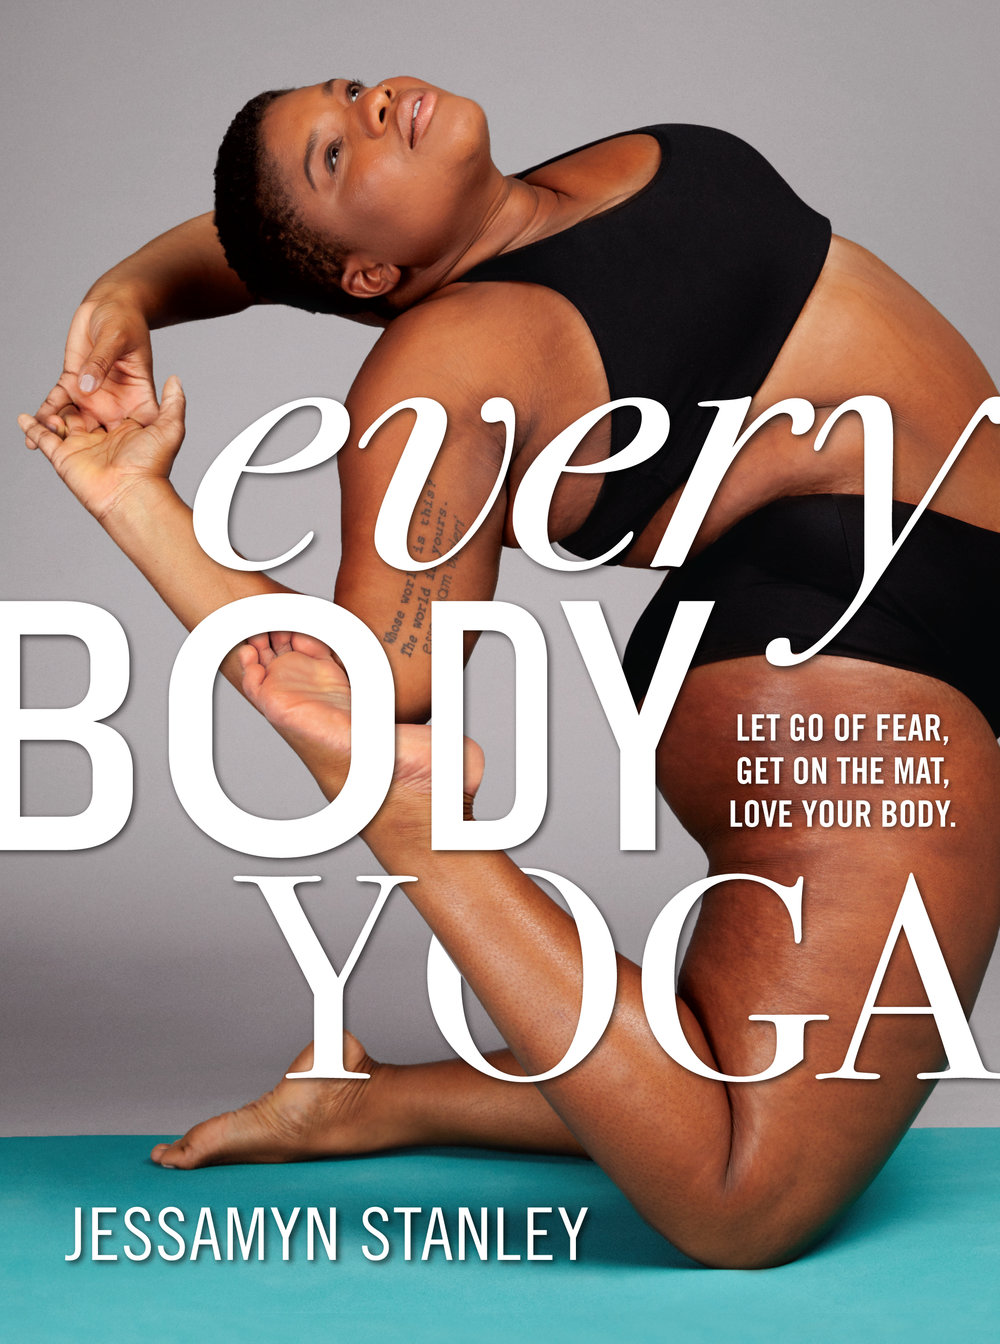 EVERY BODY YOGA - 2D cover.jpg